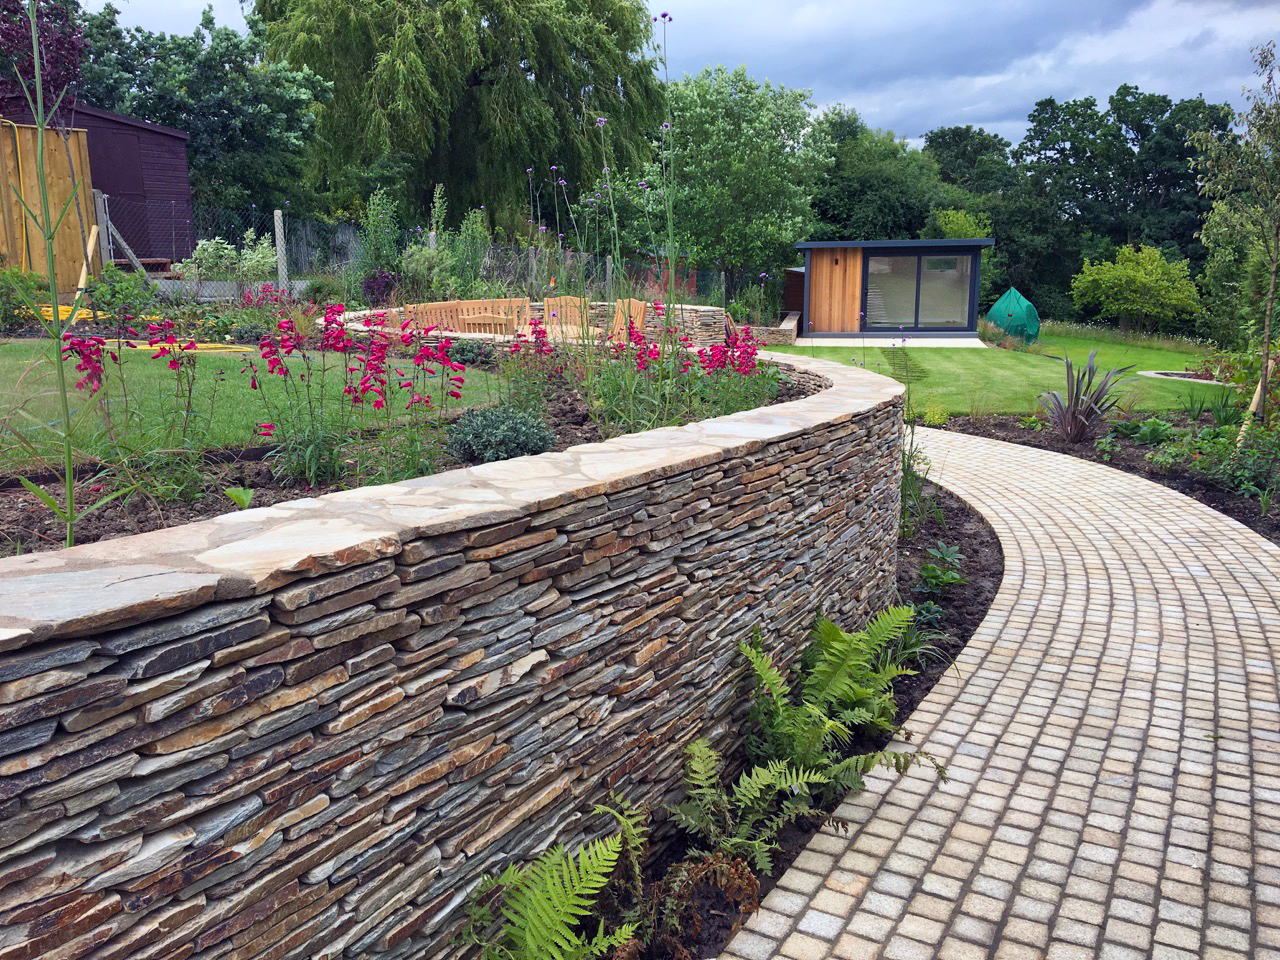 Private Garden designed by Amanda Broughton and built by Lanwarne Landscapes featuring our Yellow Paddlestones, Yellow Granite Setts and Buff Sandstone Paving.